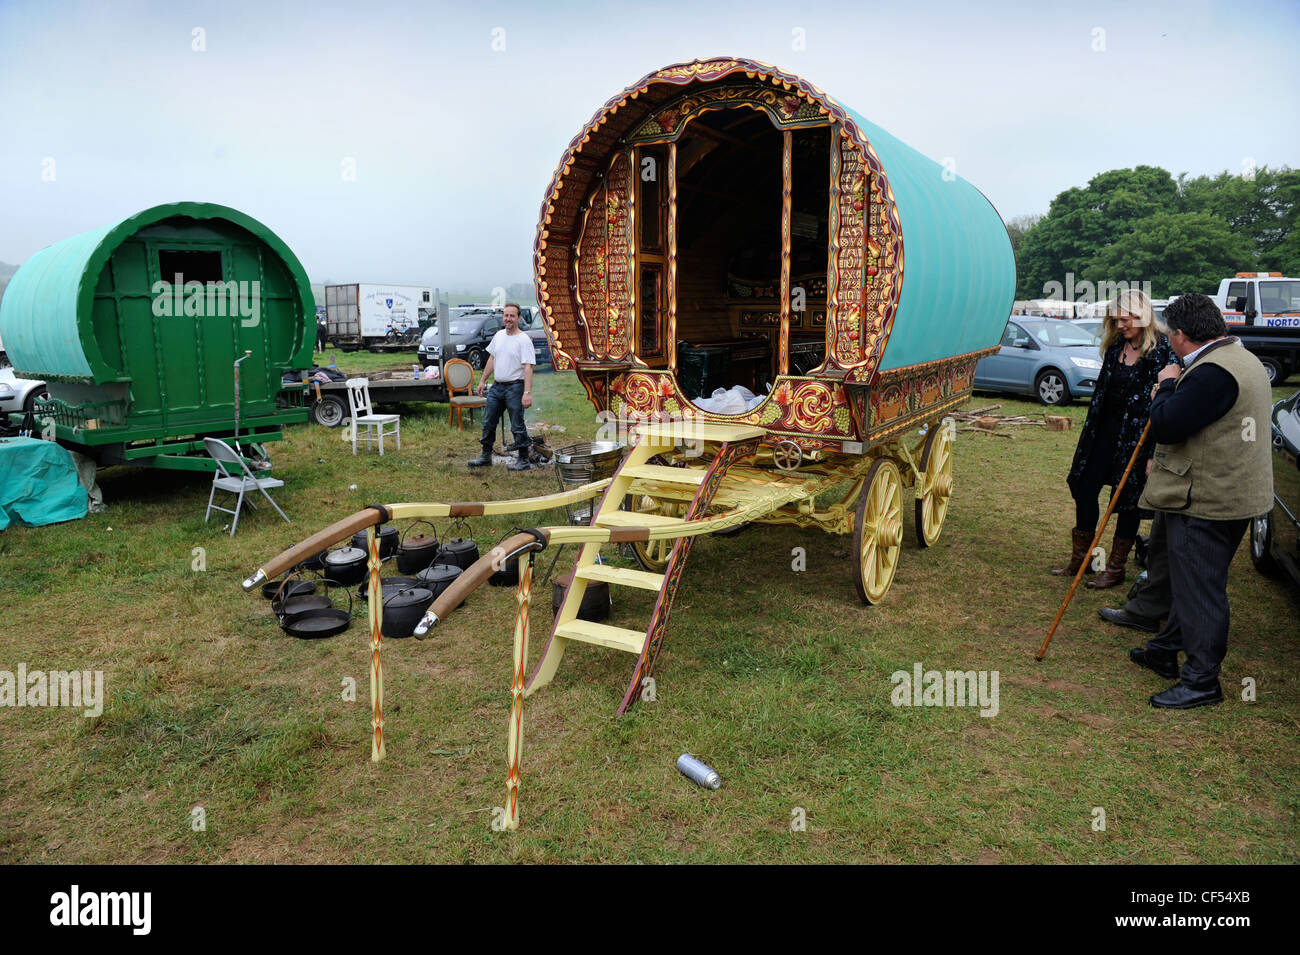 A highly decorative horse drawn caravan or Gypsy wagon at the Stow-on-the-Wold horse fair May 2009 UK - Stock Image